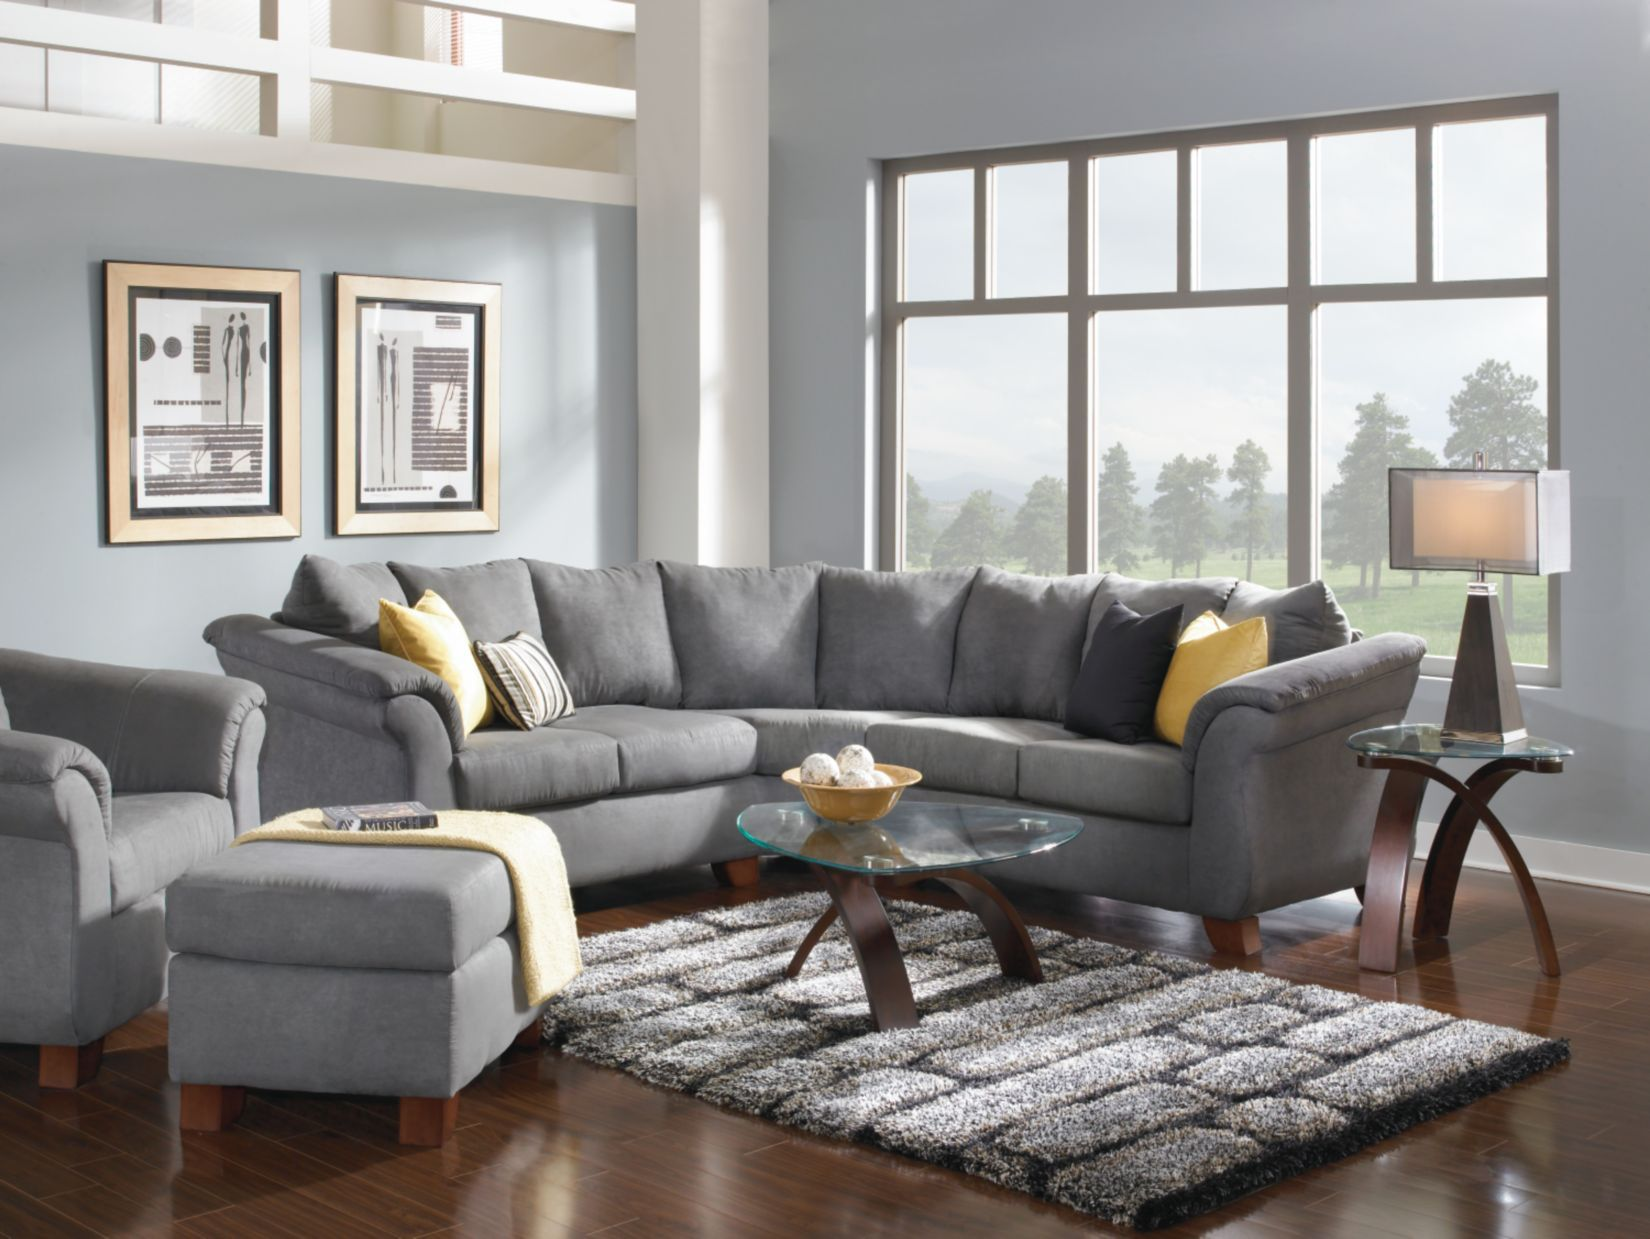 Adrian Graphite sectional couch  Value city furniture, Furniture